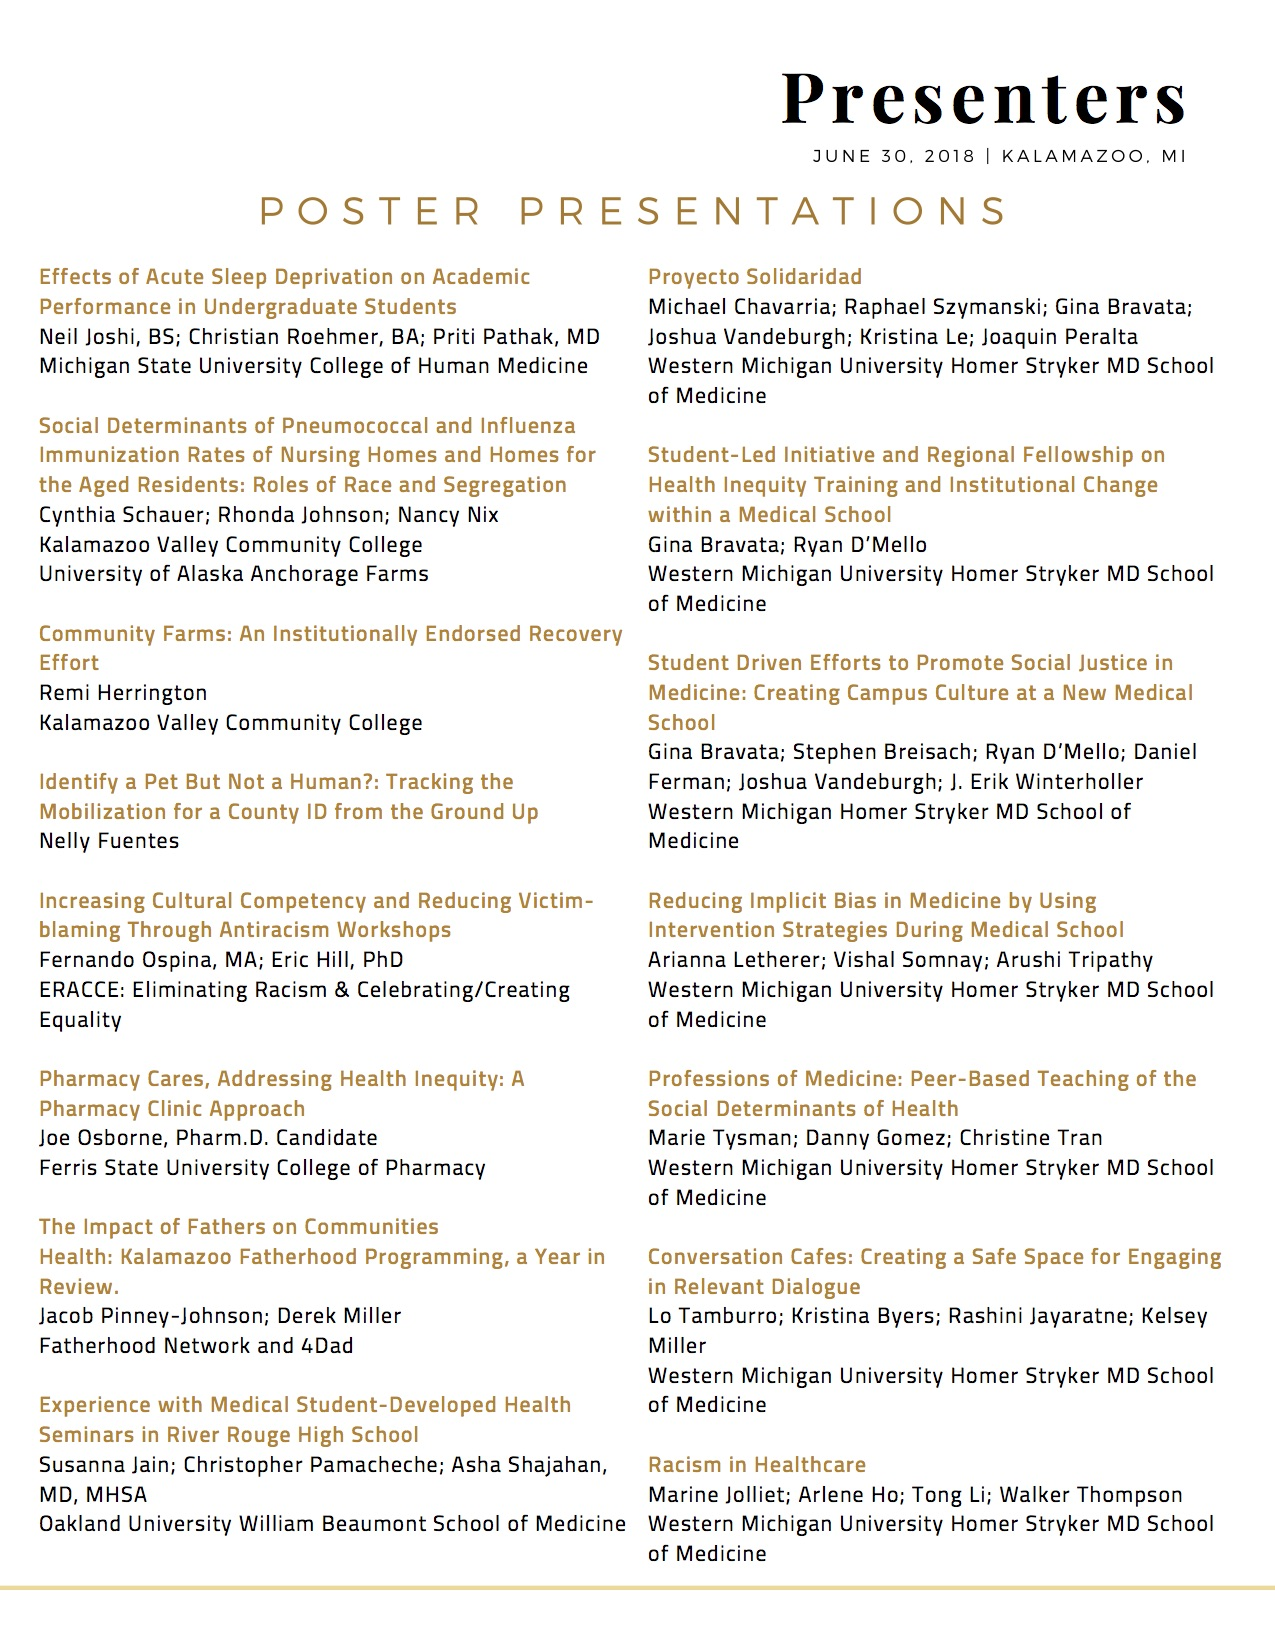 Poster Presenters: Title, Author, Institution